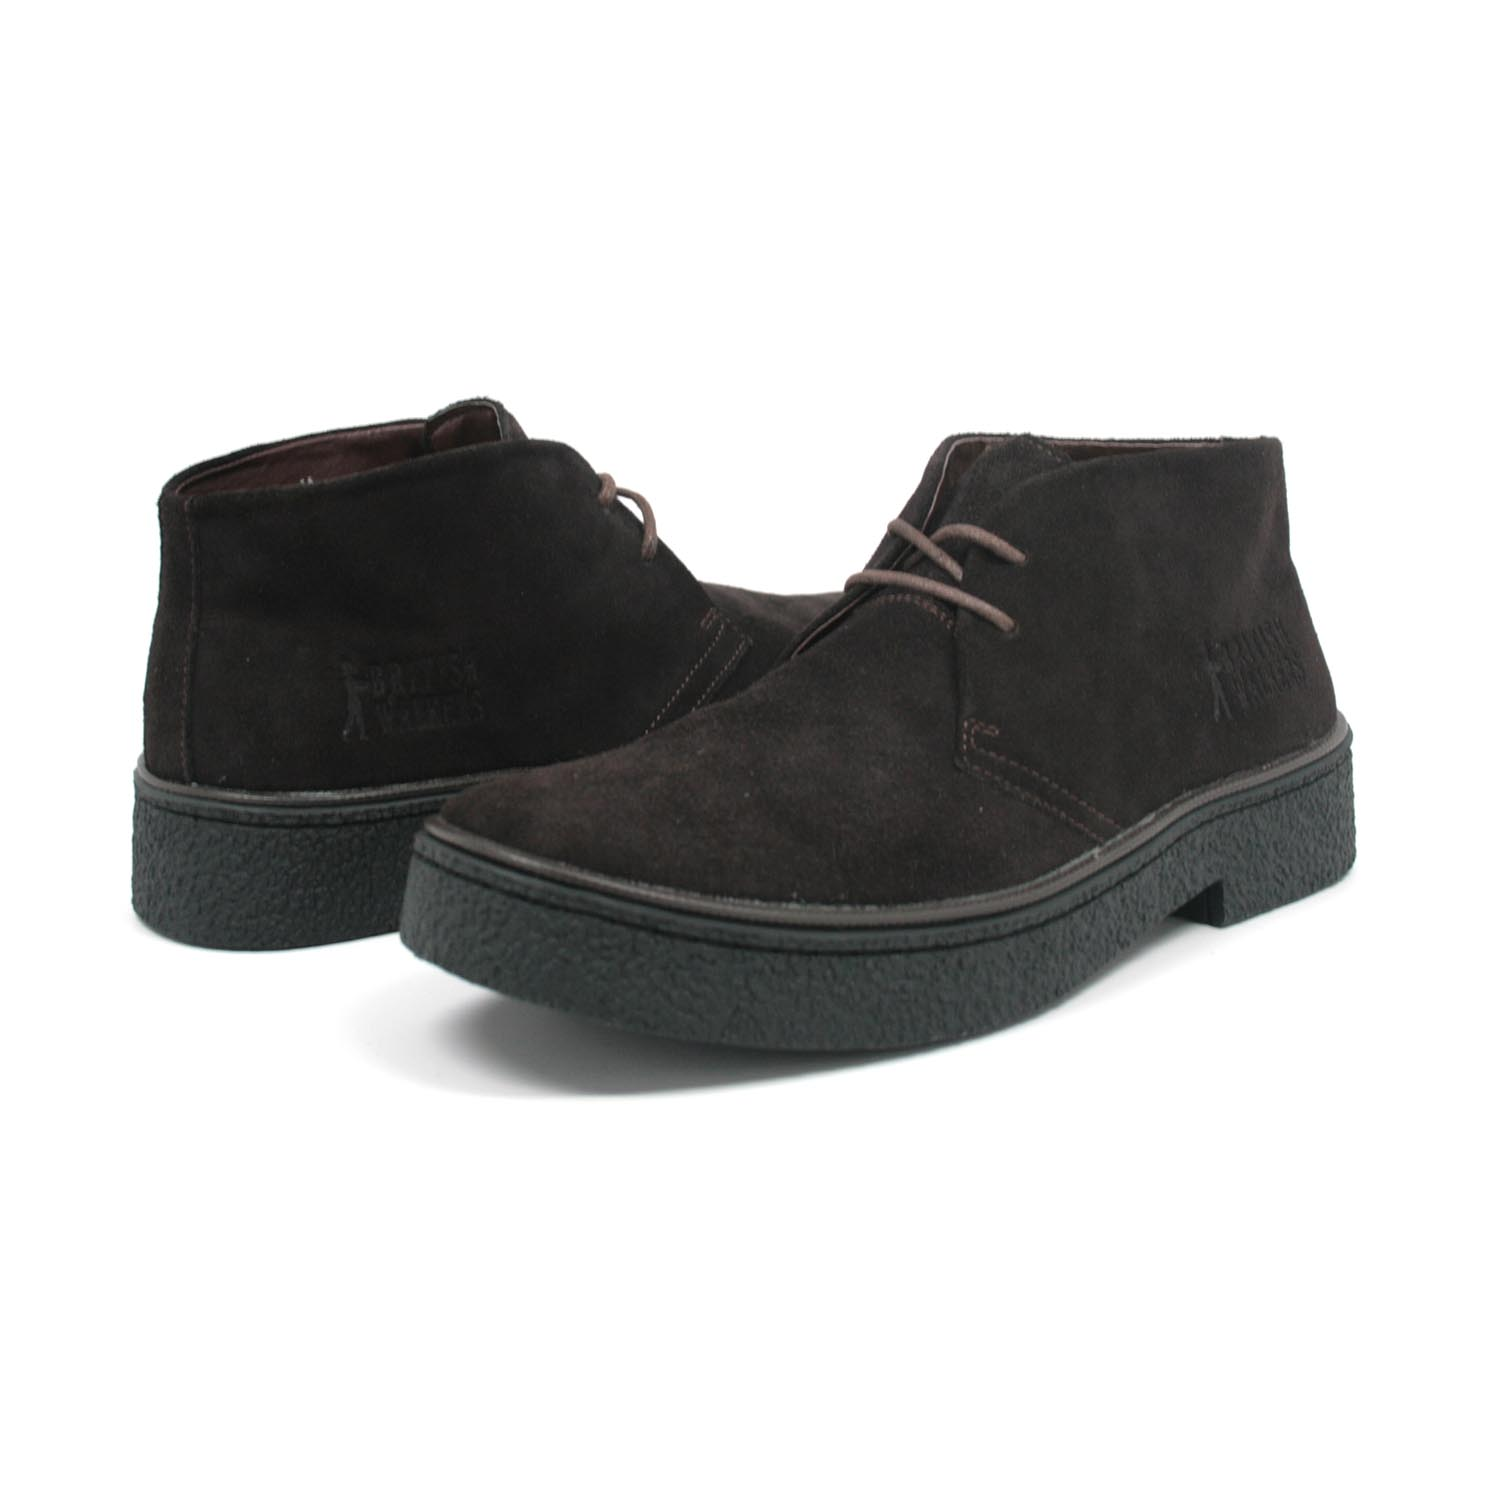 British Collection Men's Playboy Chukka Boot Black Suede - $99.99 ...